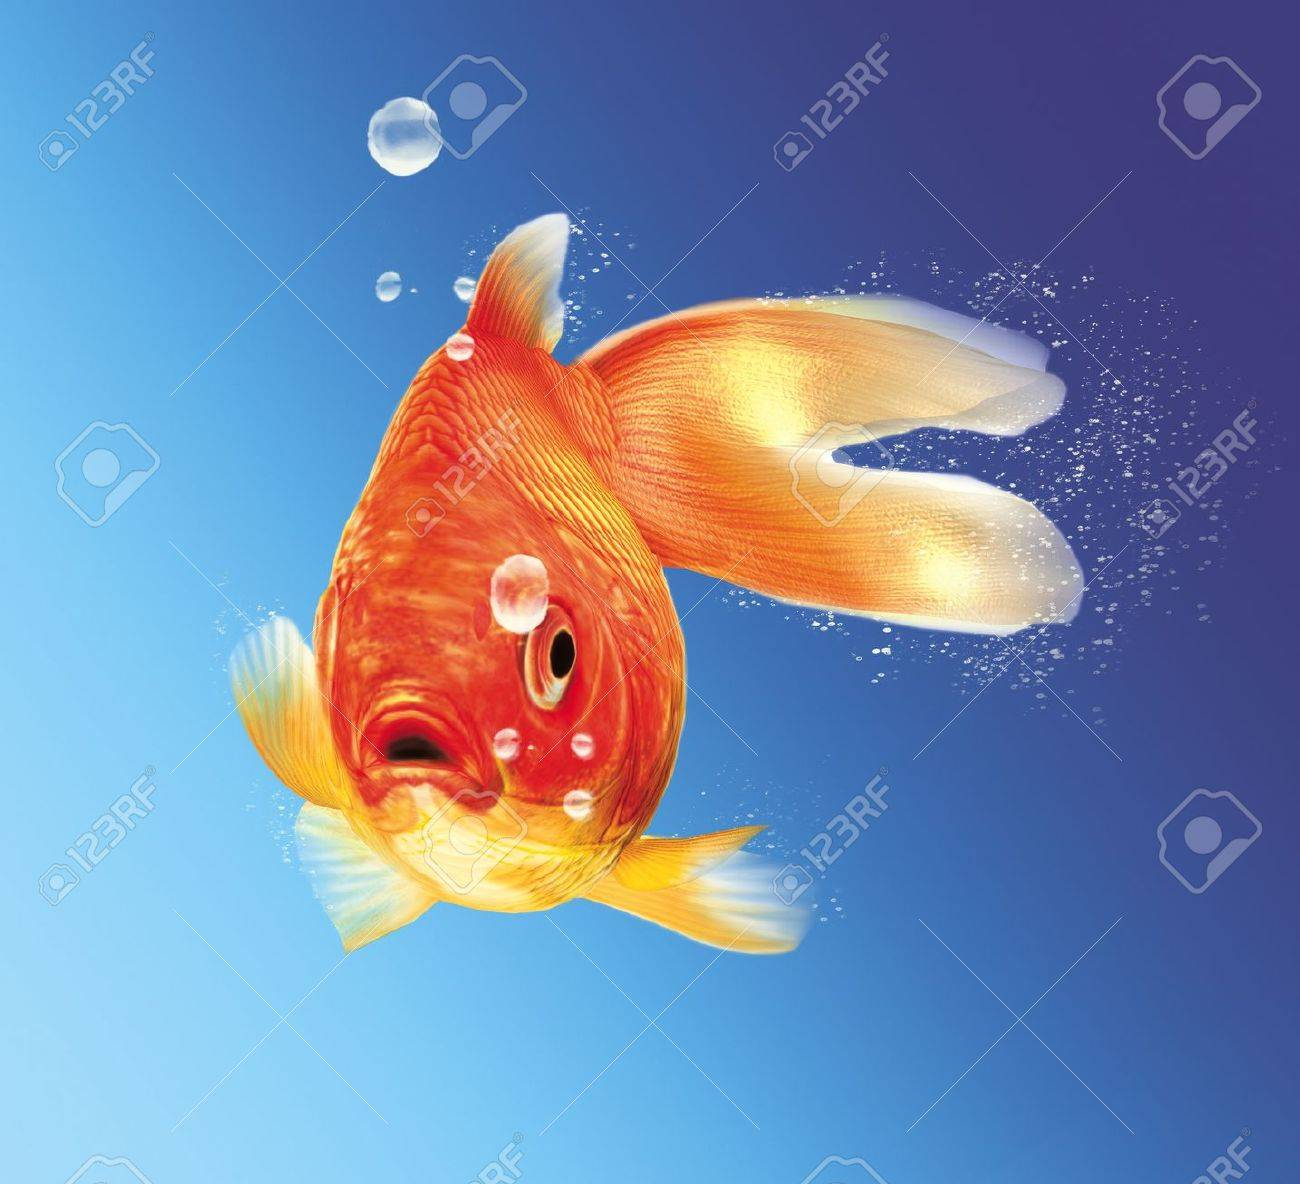 Gold fish facing the viewer, with some water bubbles, on blue gradient background. Stock Photo - 11779691